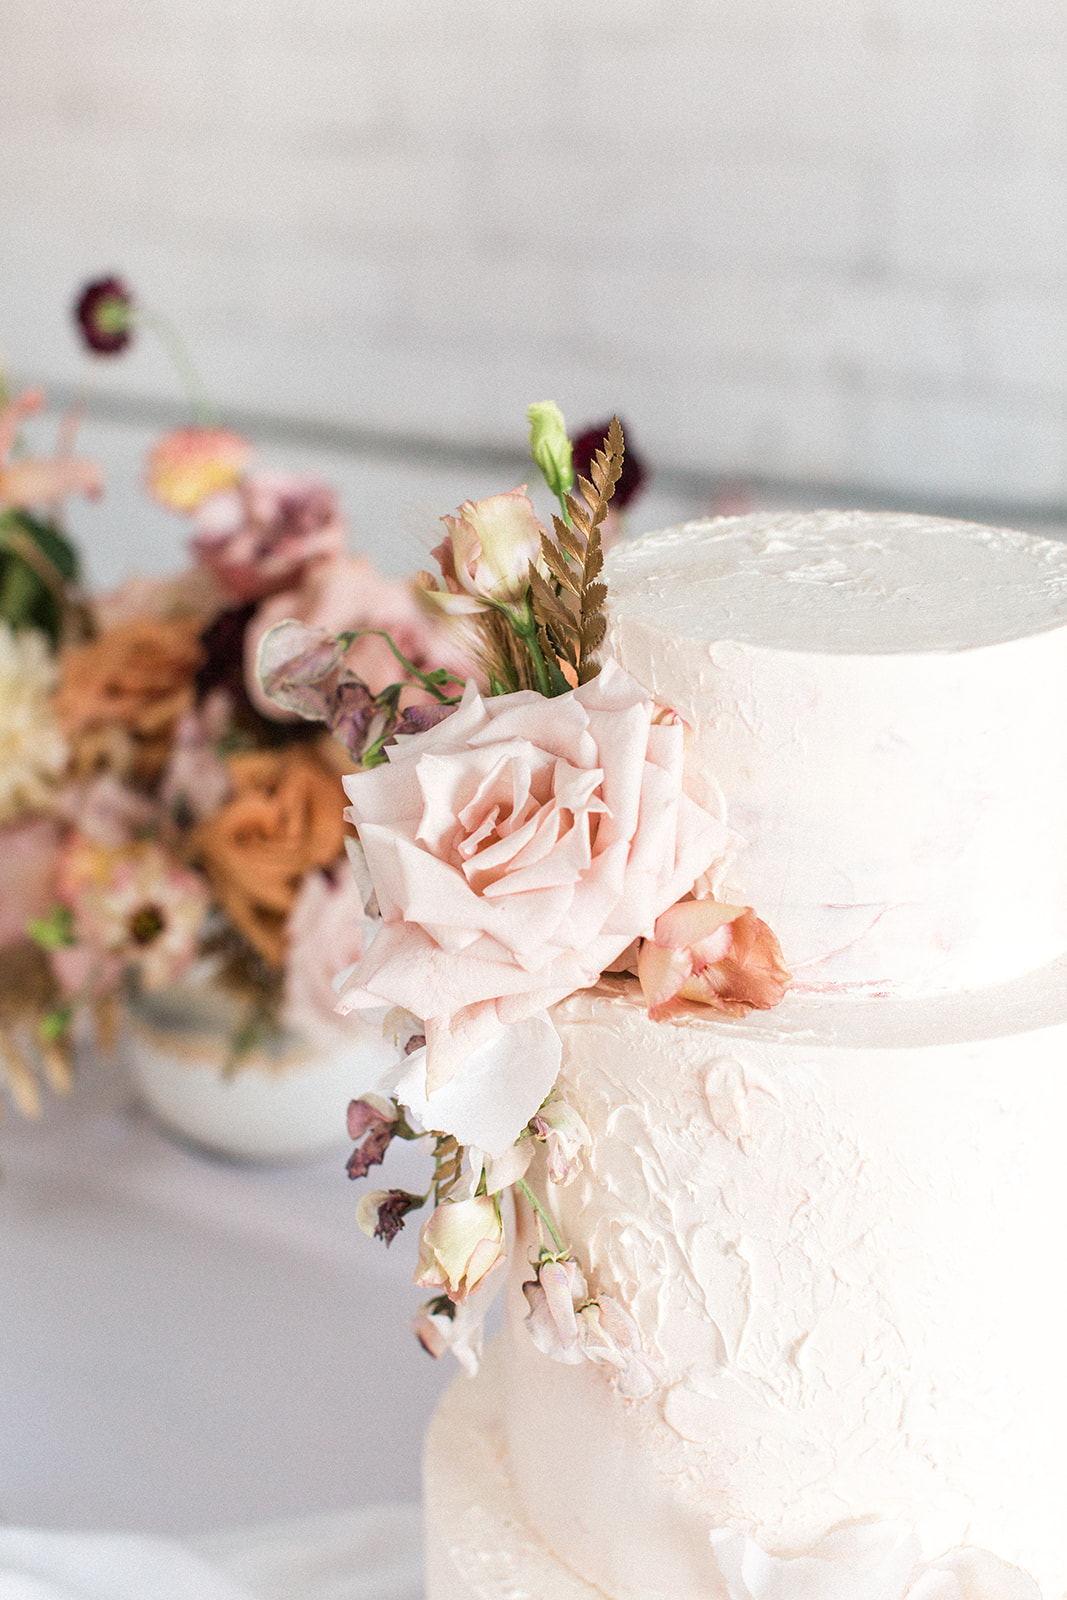 Meet DFW Wedding Cake Designers at Butterfly Cakery on Alexa Kay Events!